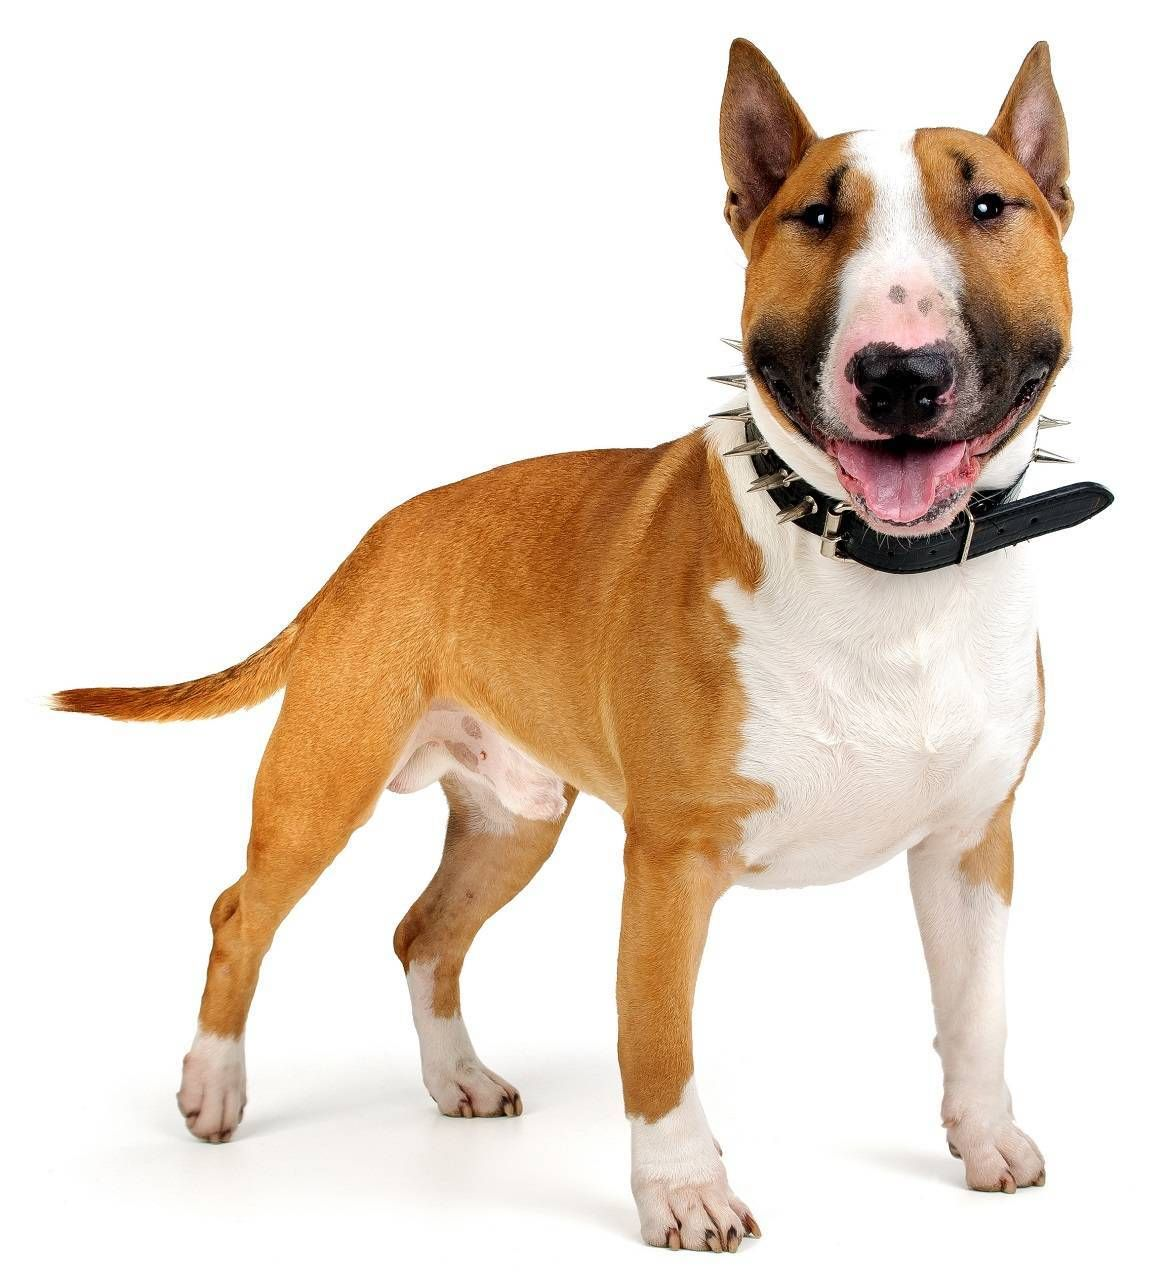 Bull Terrier Dog Breed Guide (With images) Bull